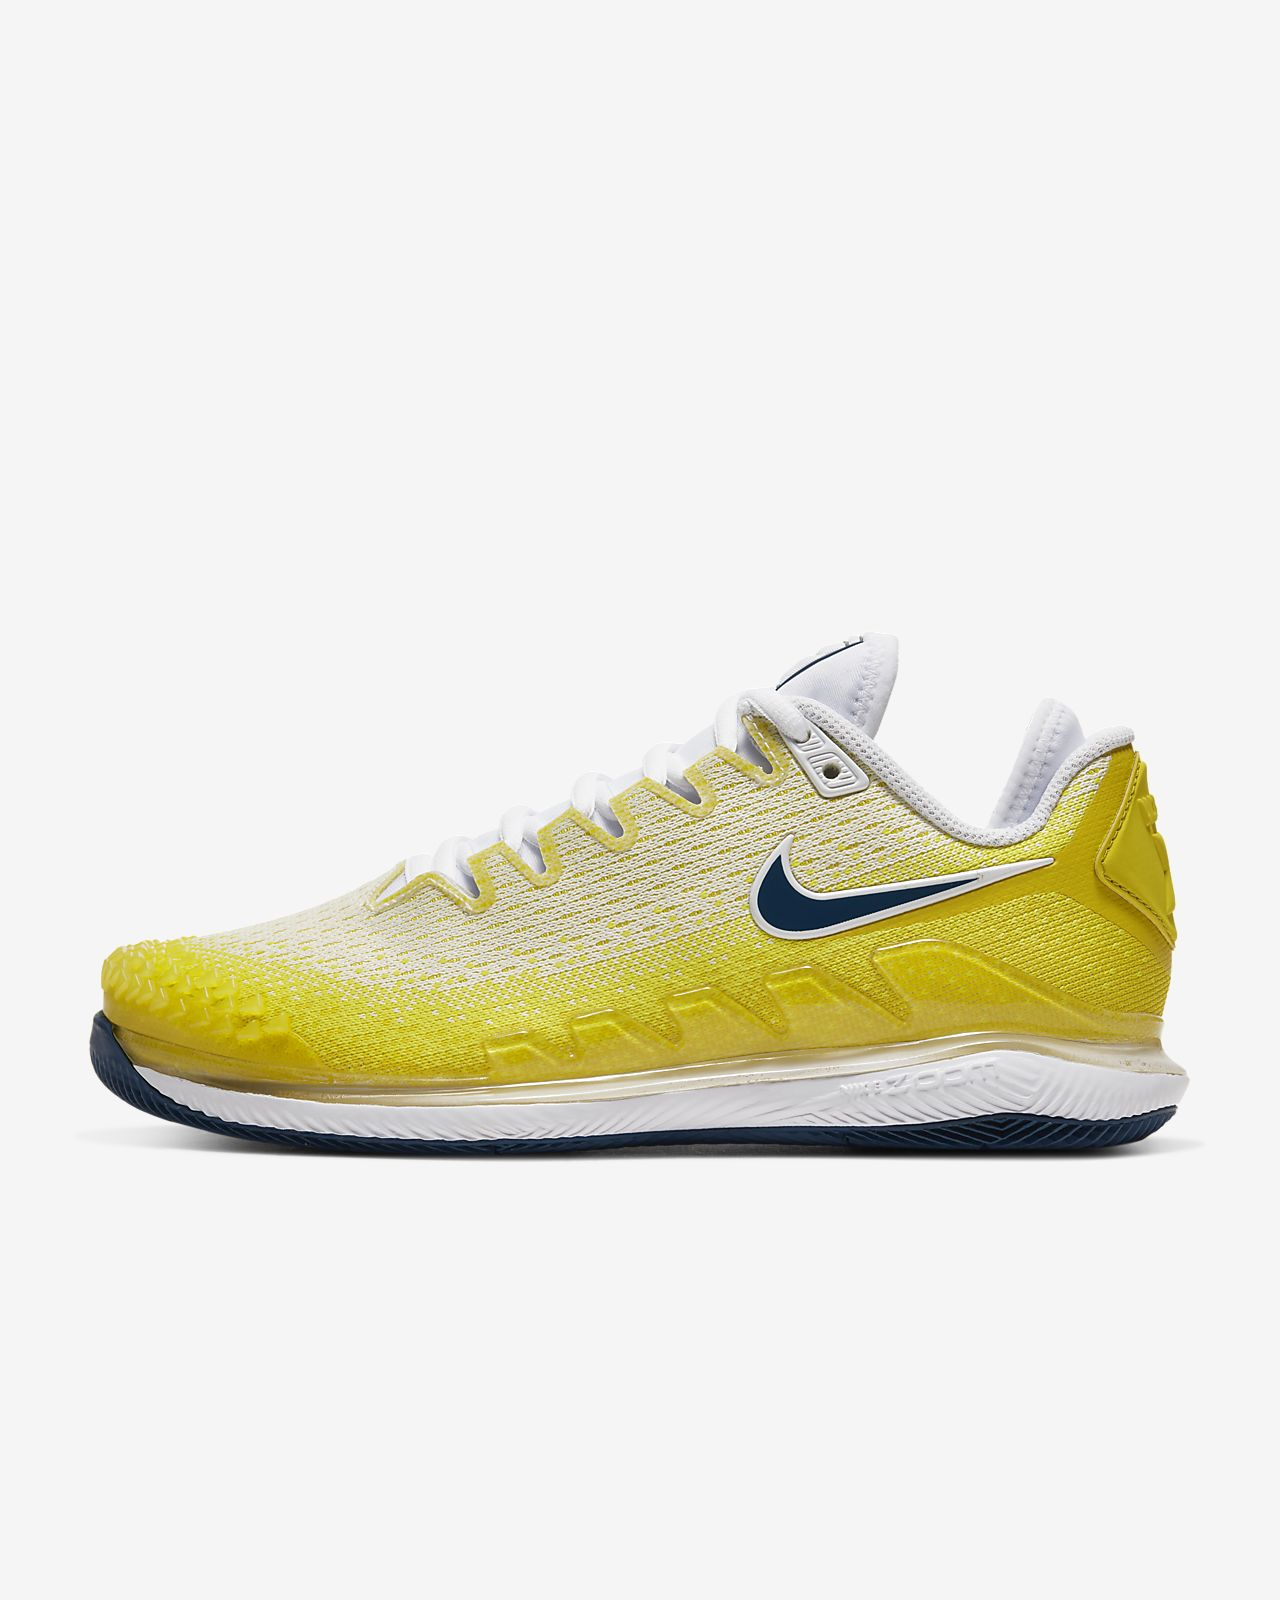 Scarpa da tennis per campi in cemento NikeCourt Air Zoom Vapor X Knit - Donna